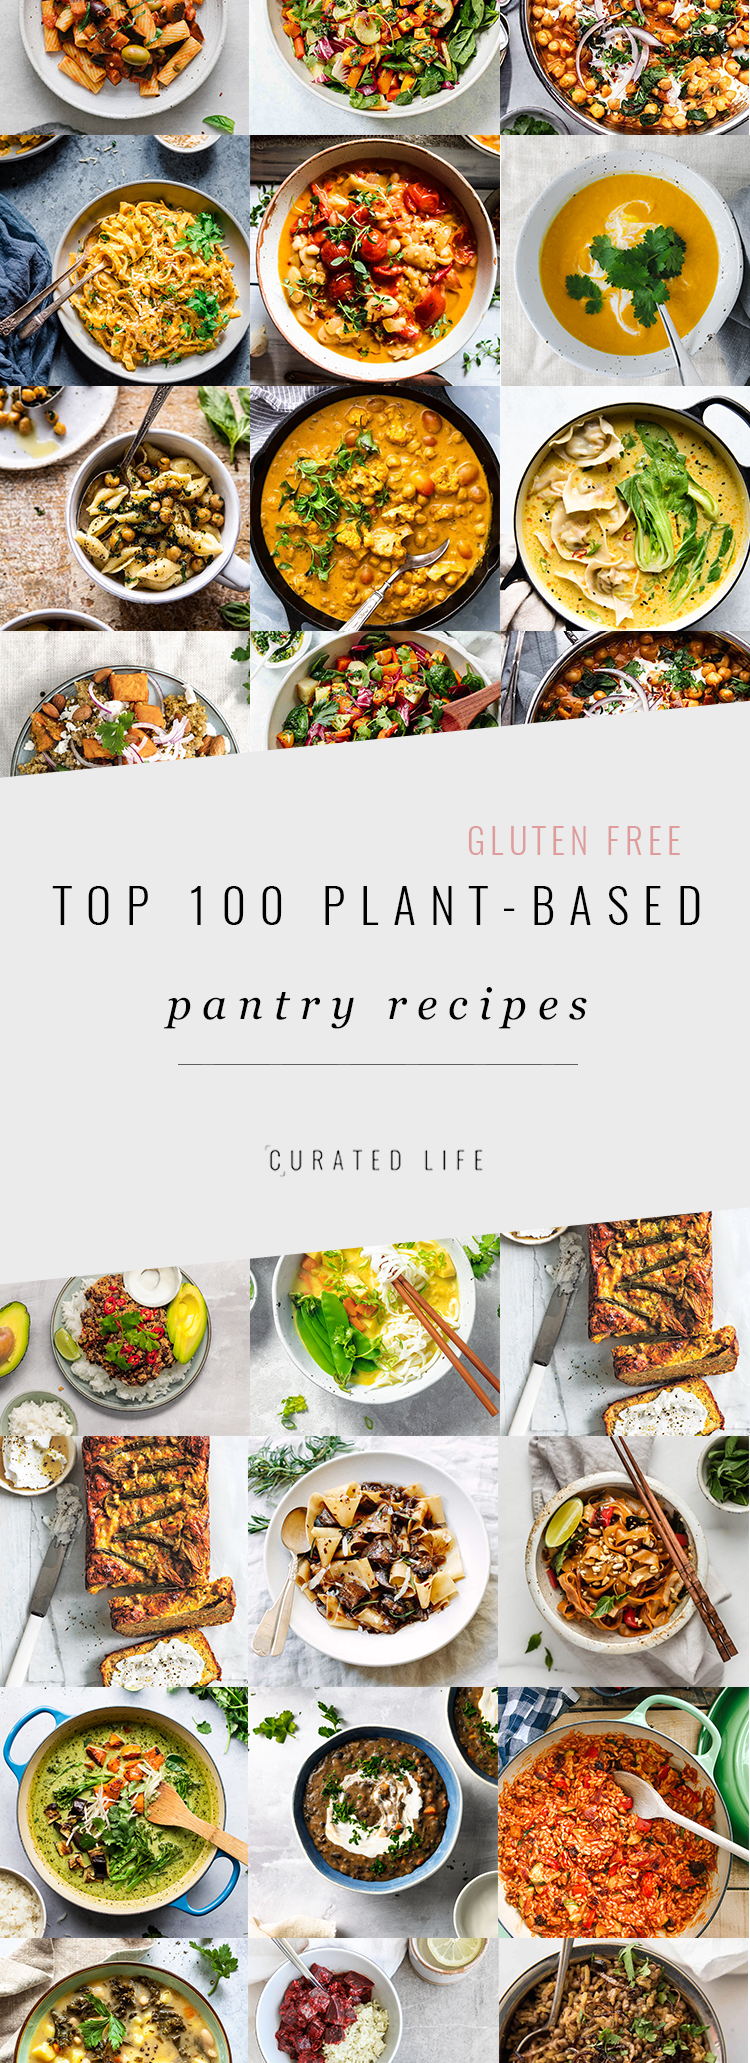 The top 100 plant-based essential pantry recipes for the vegan, gluten-free or vegetarian kitchen! Substitutions with a FREE 80+ Kitchen Pantry Essentials Checklist!  #pantry #staples #meals #recipes #vegan #gluten-free #vegetarian #clean #plant-based #minimalist #list